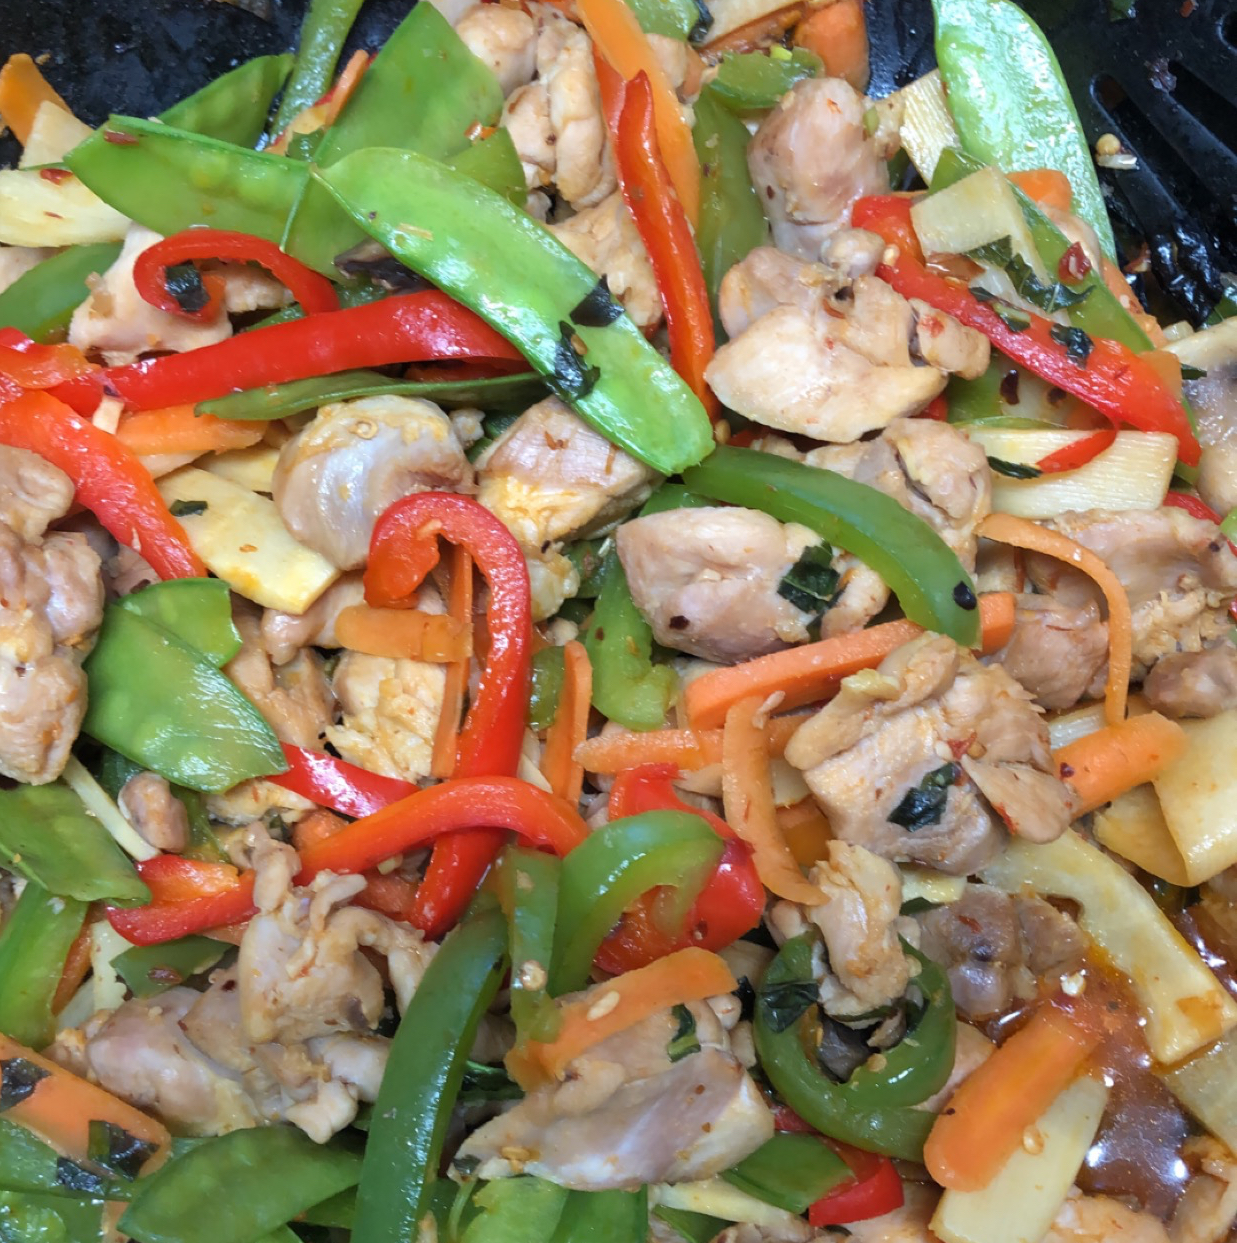 NP's Spicy Thai Basil Chicken and Veggies Mardy